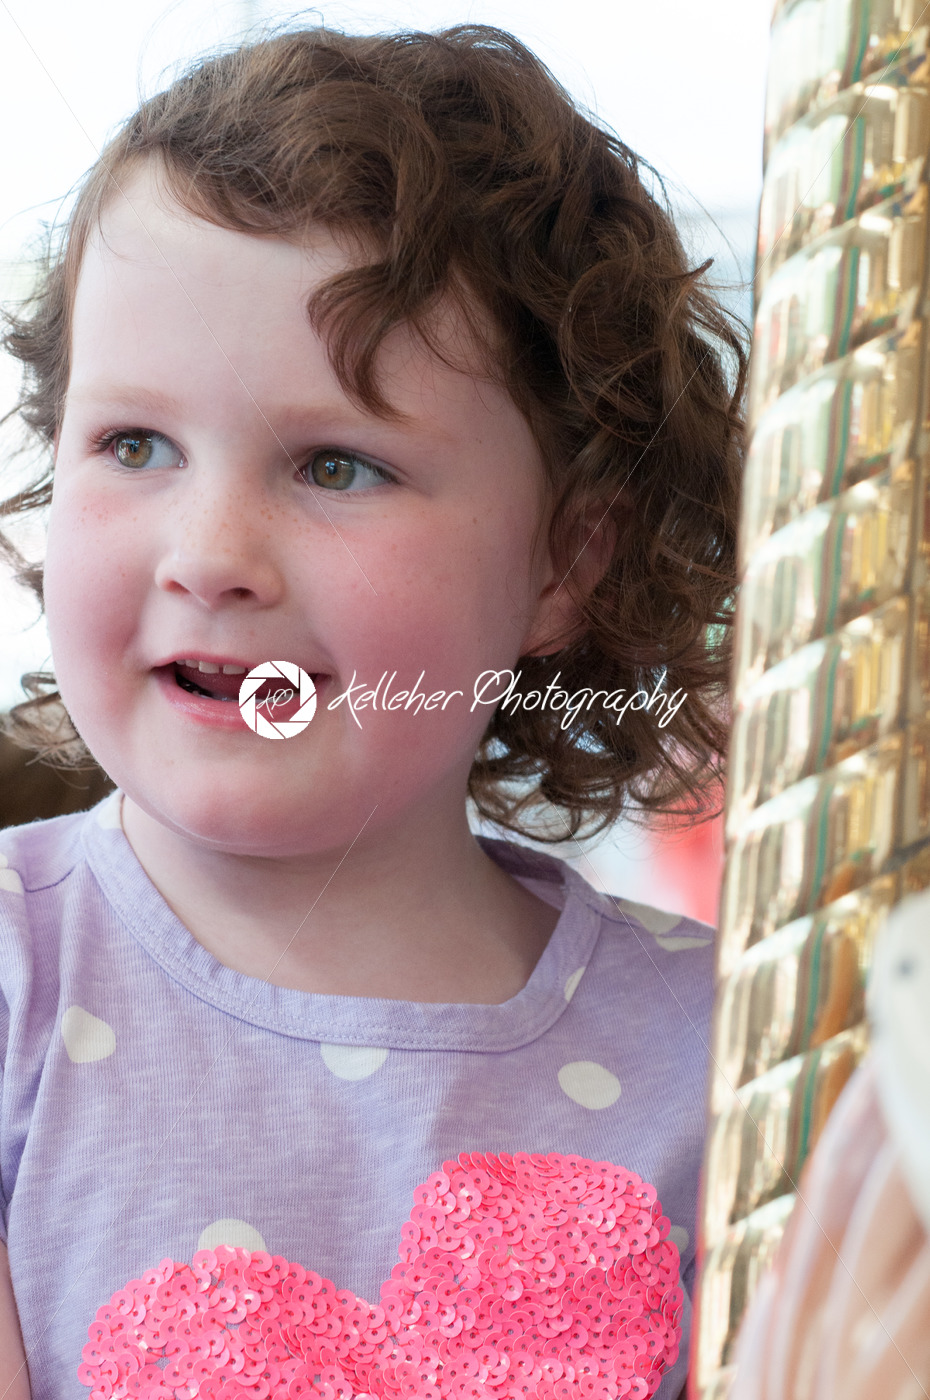 Young girl riding on fairground horse on carousel amusement ride at fairgrounds park outdoor - Kelleher Photography Store